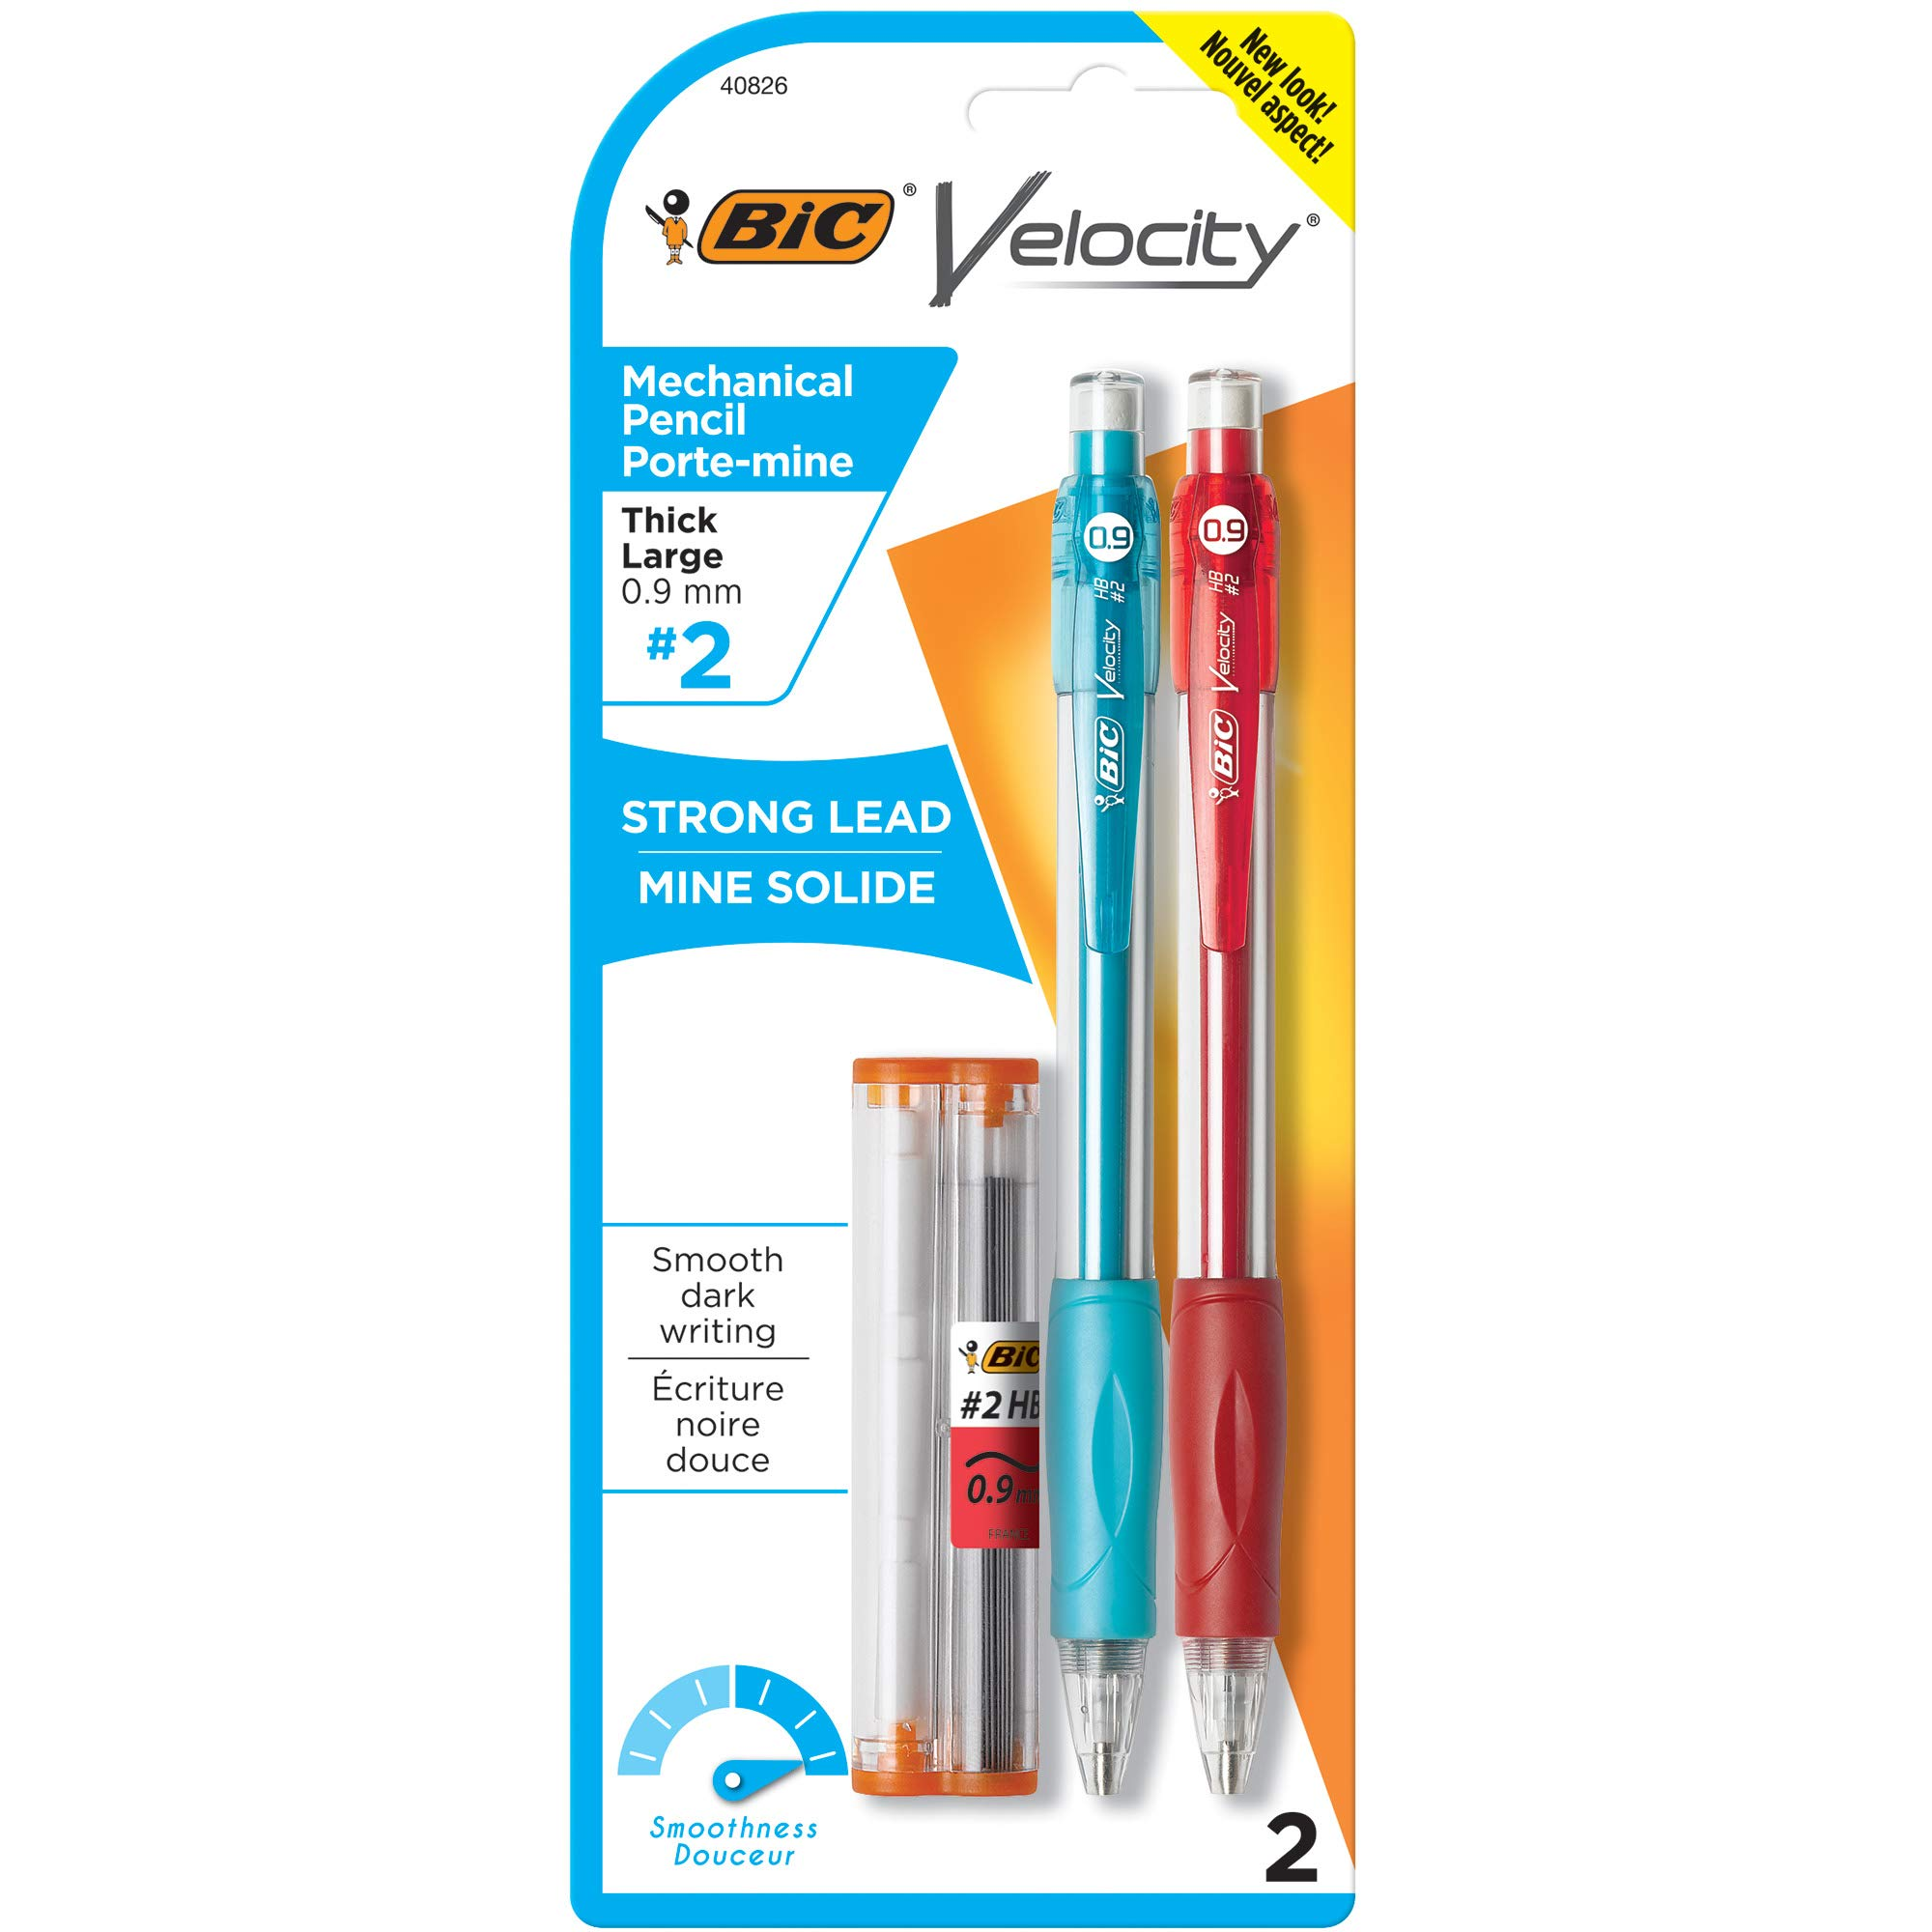 BIC Velocity Original Mechanical Pencil, Thick Point (0.9mm), 2-Count